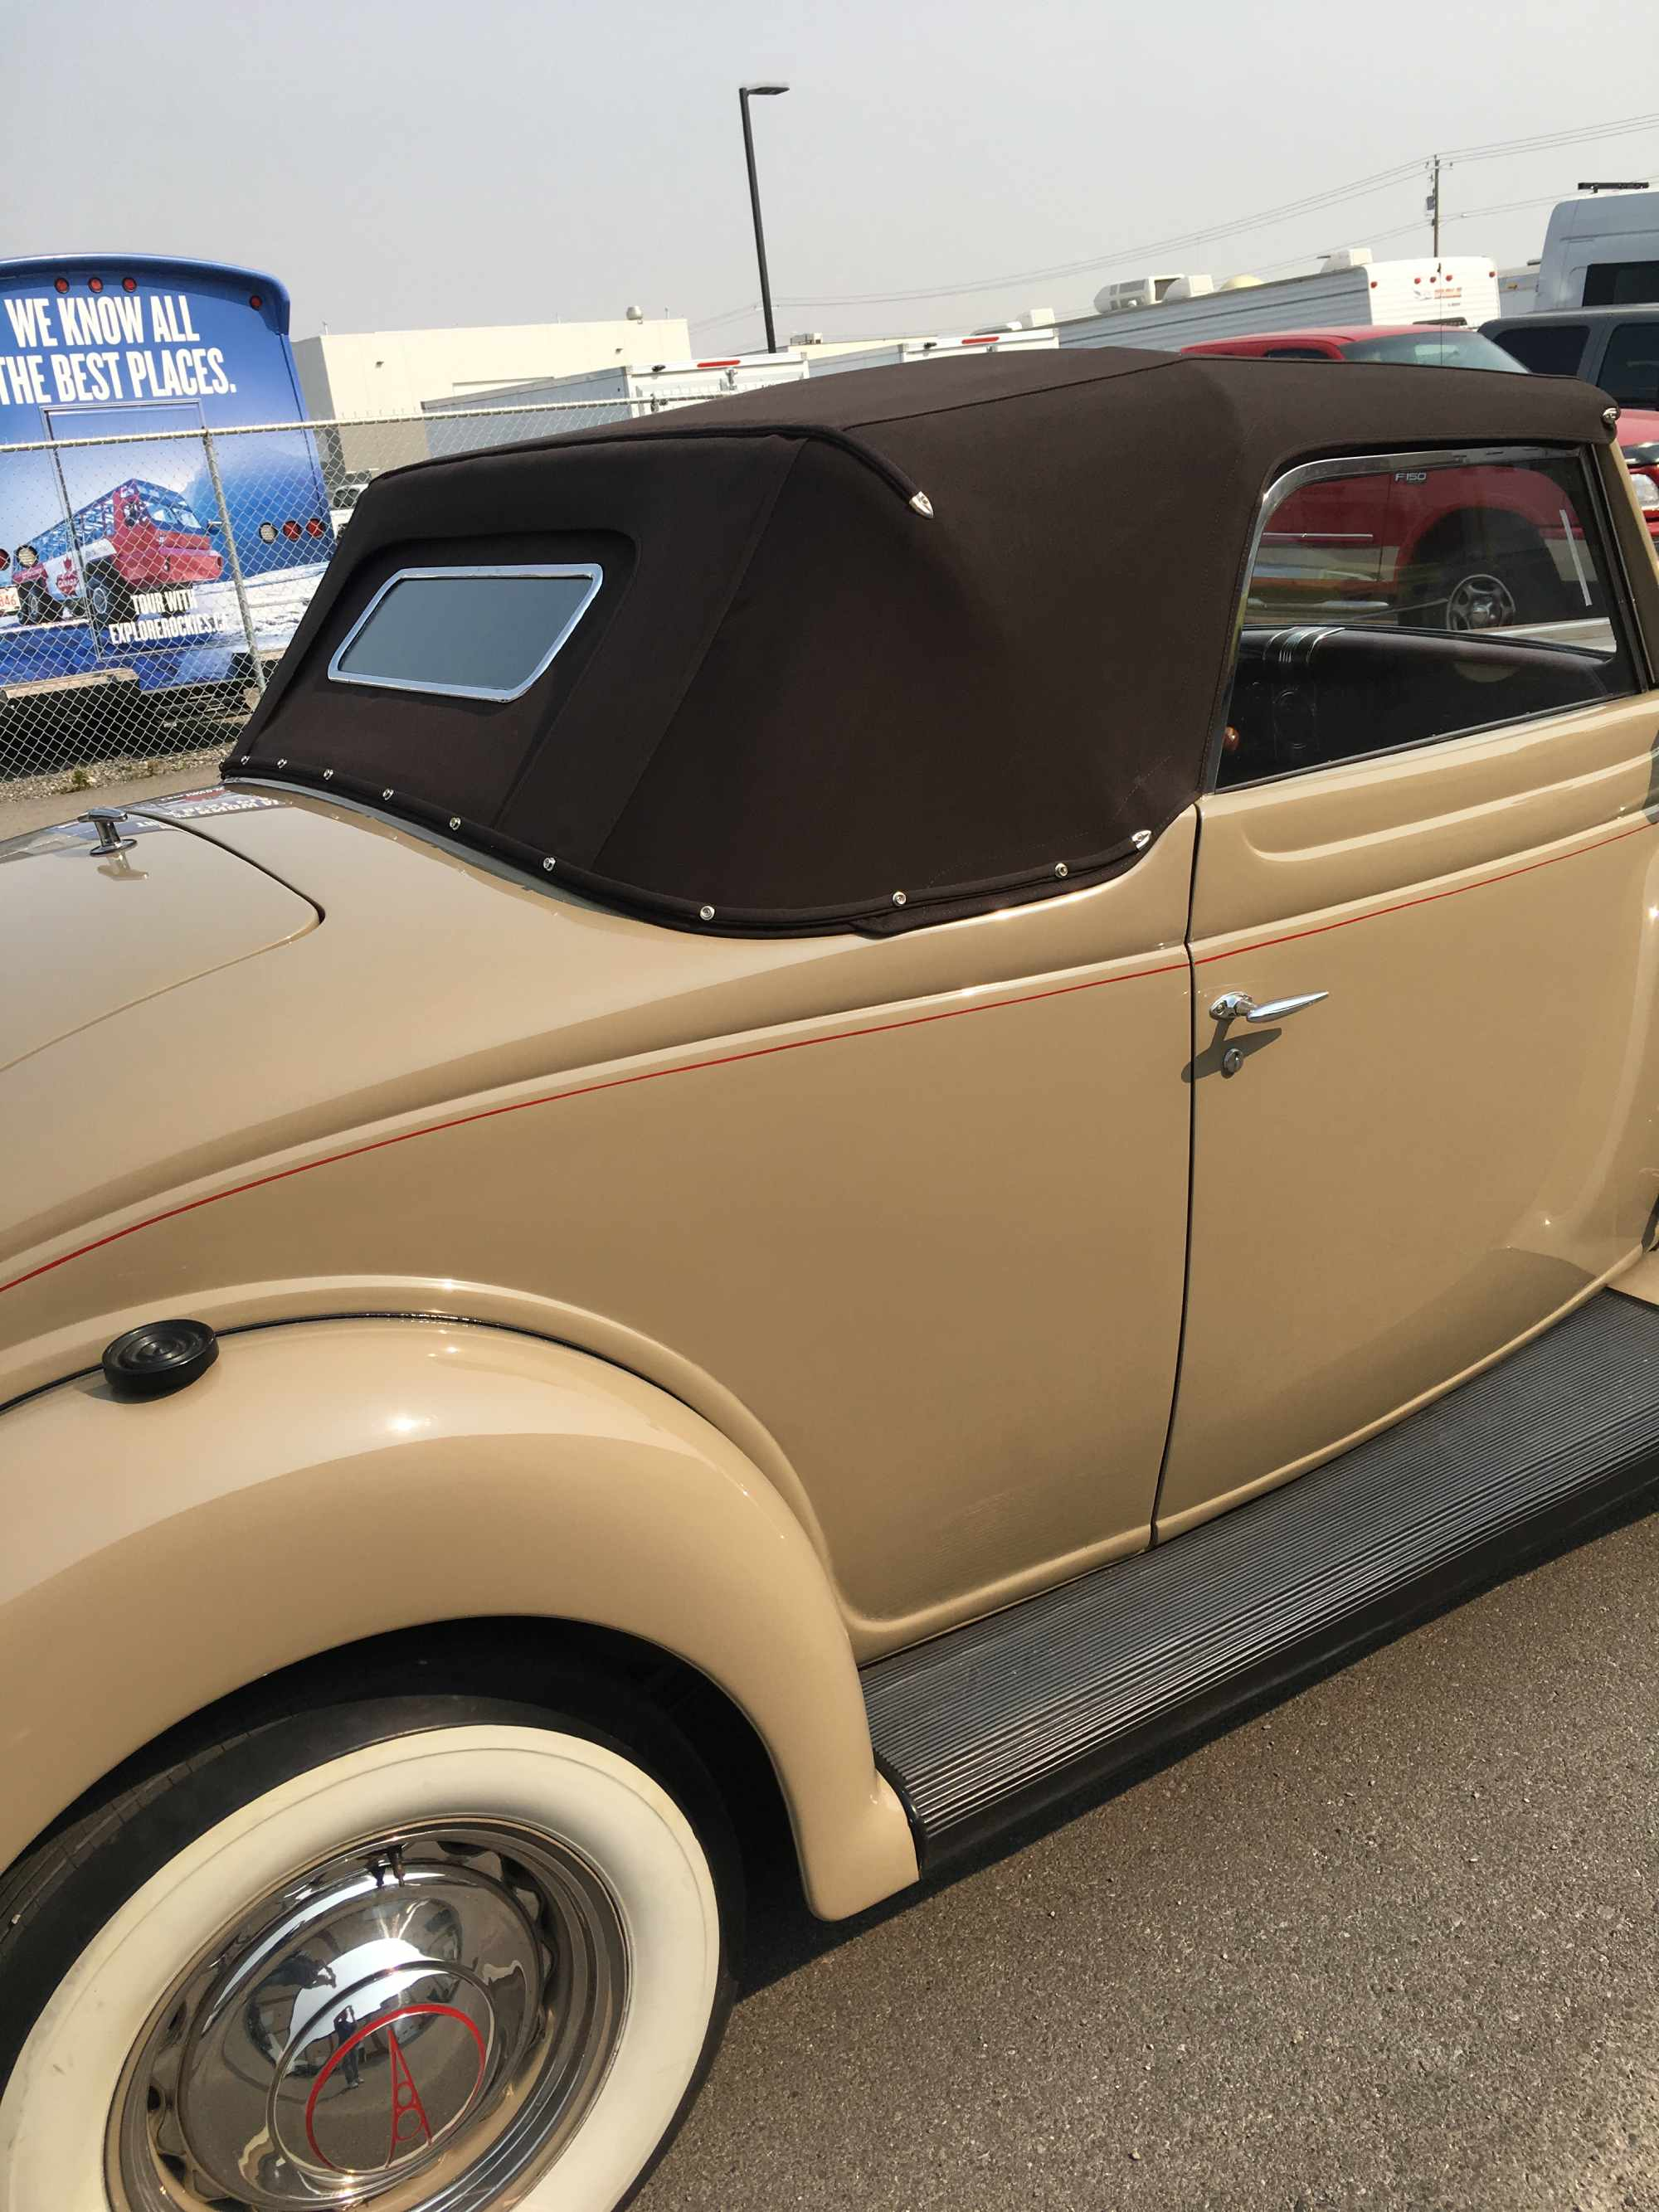 exterior view of a classic car